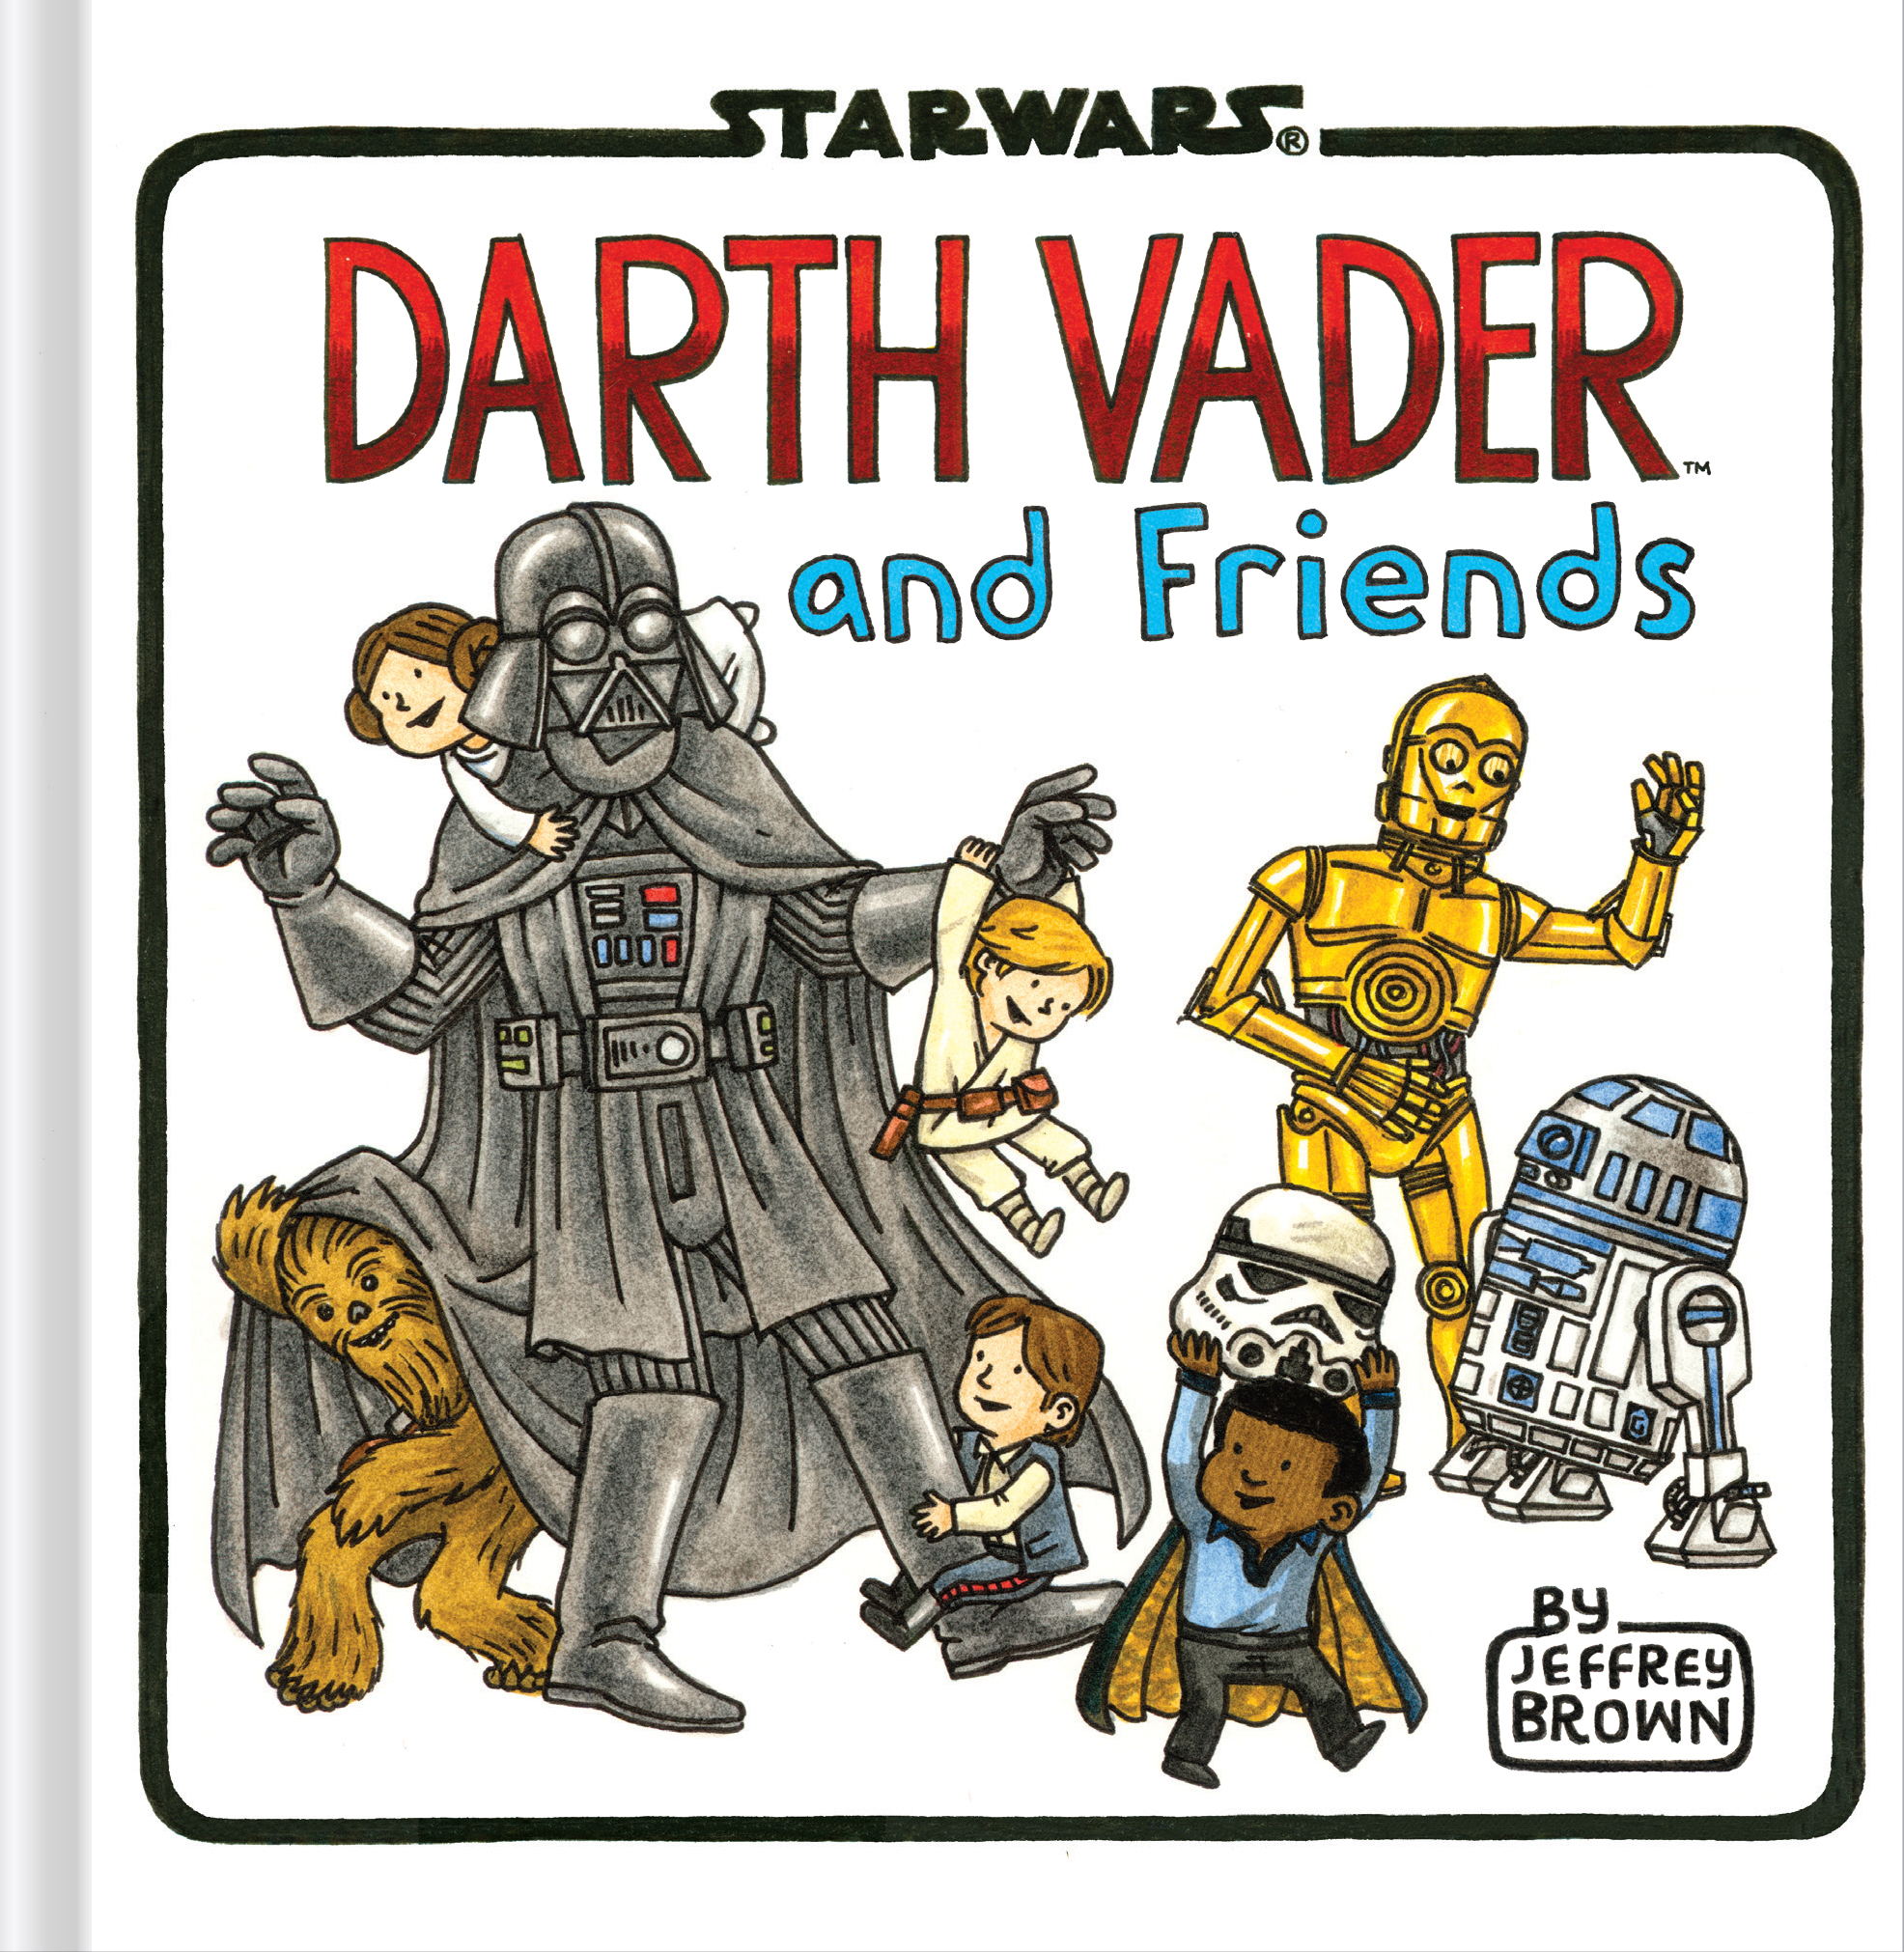 Darth vader and friends thumbnail